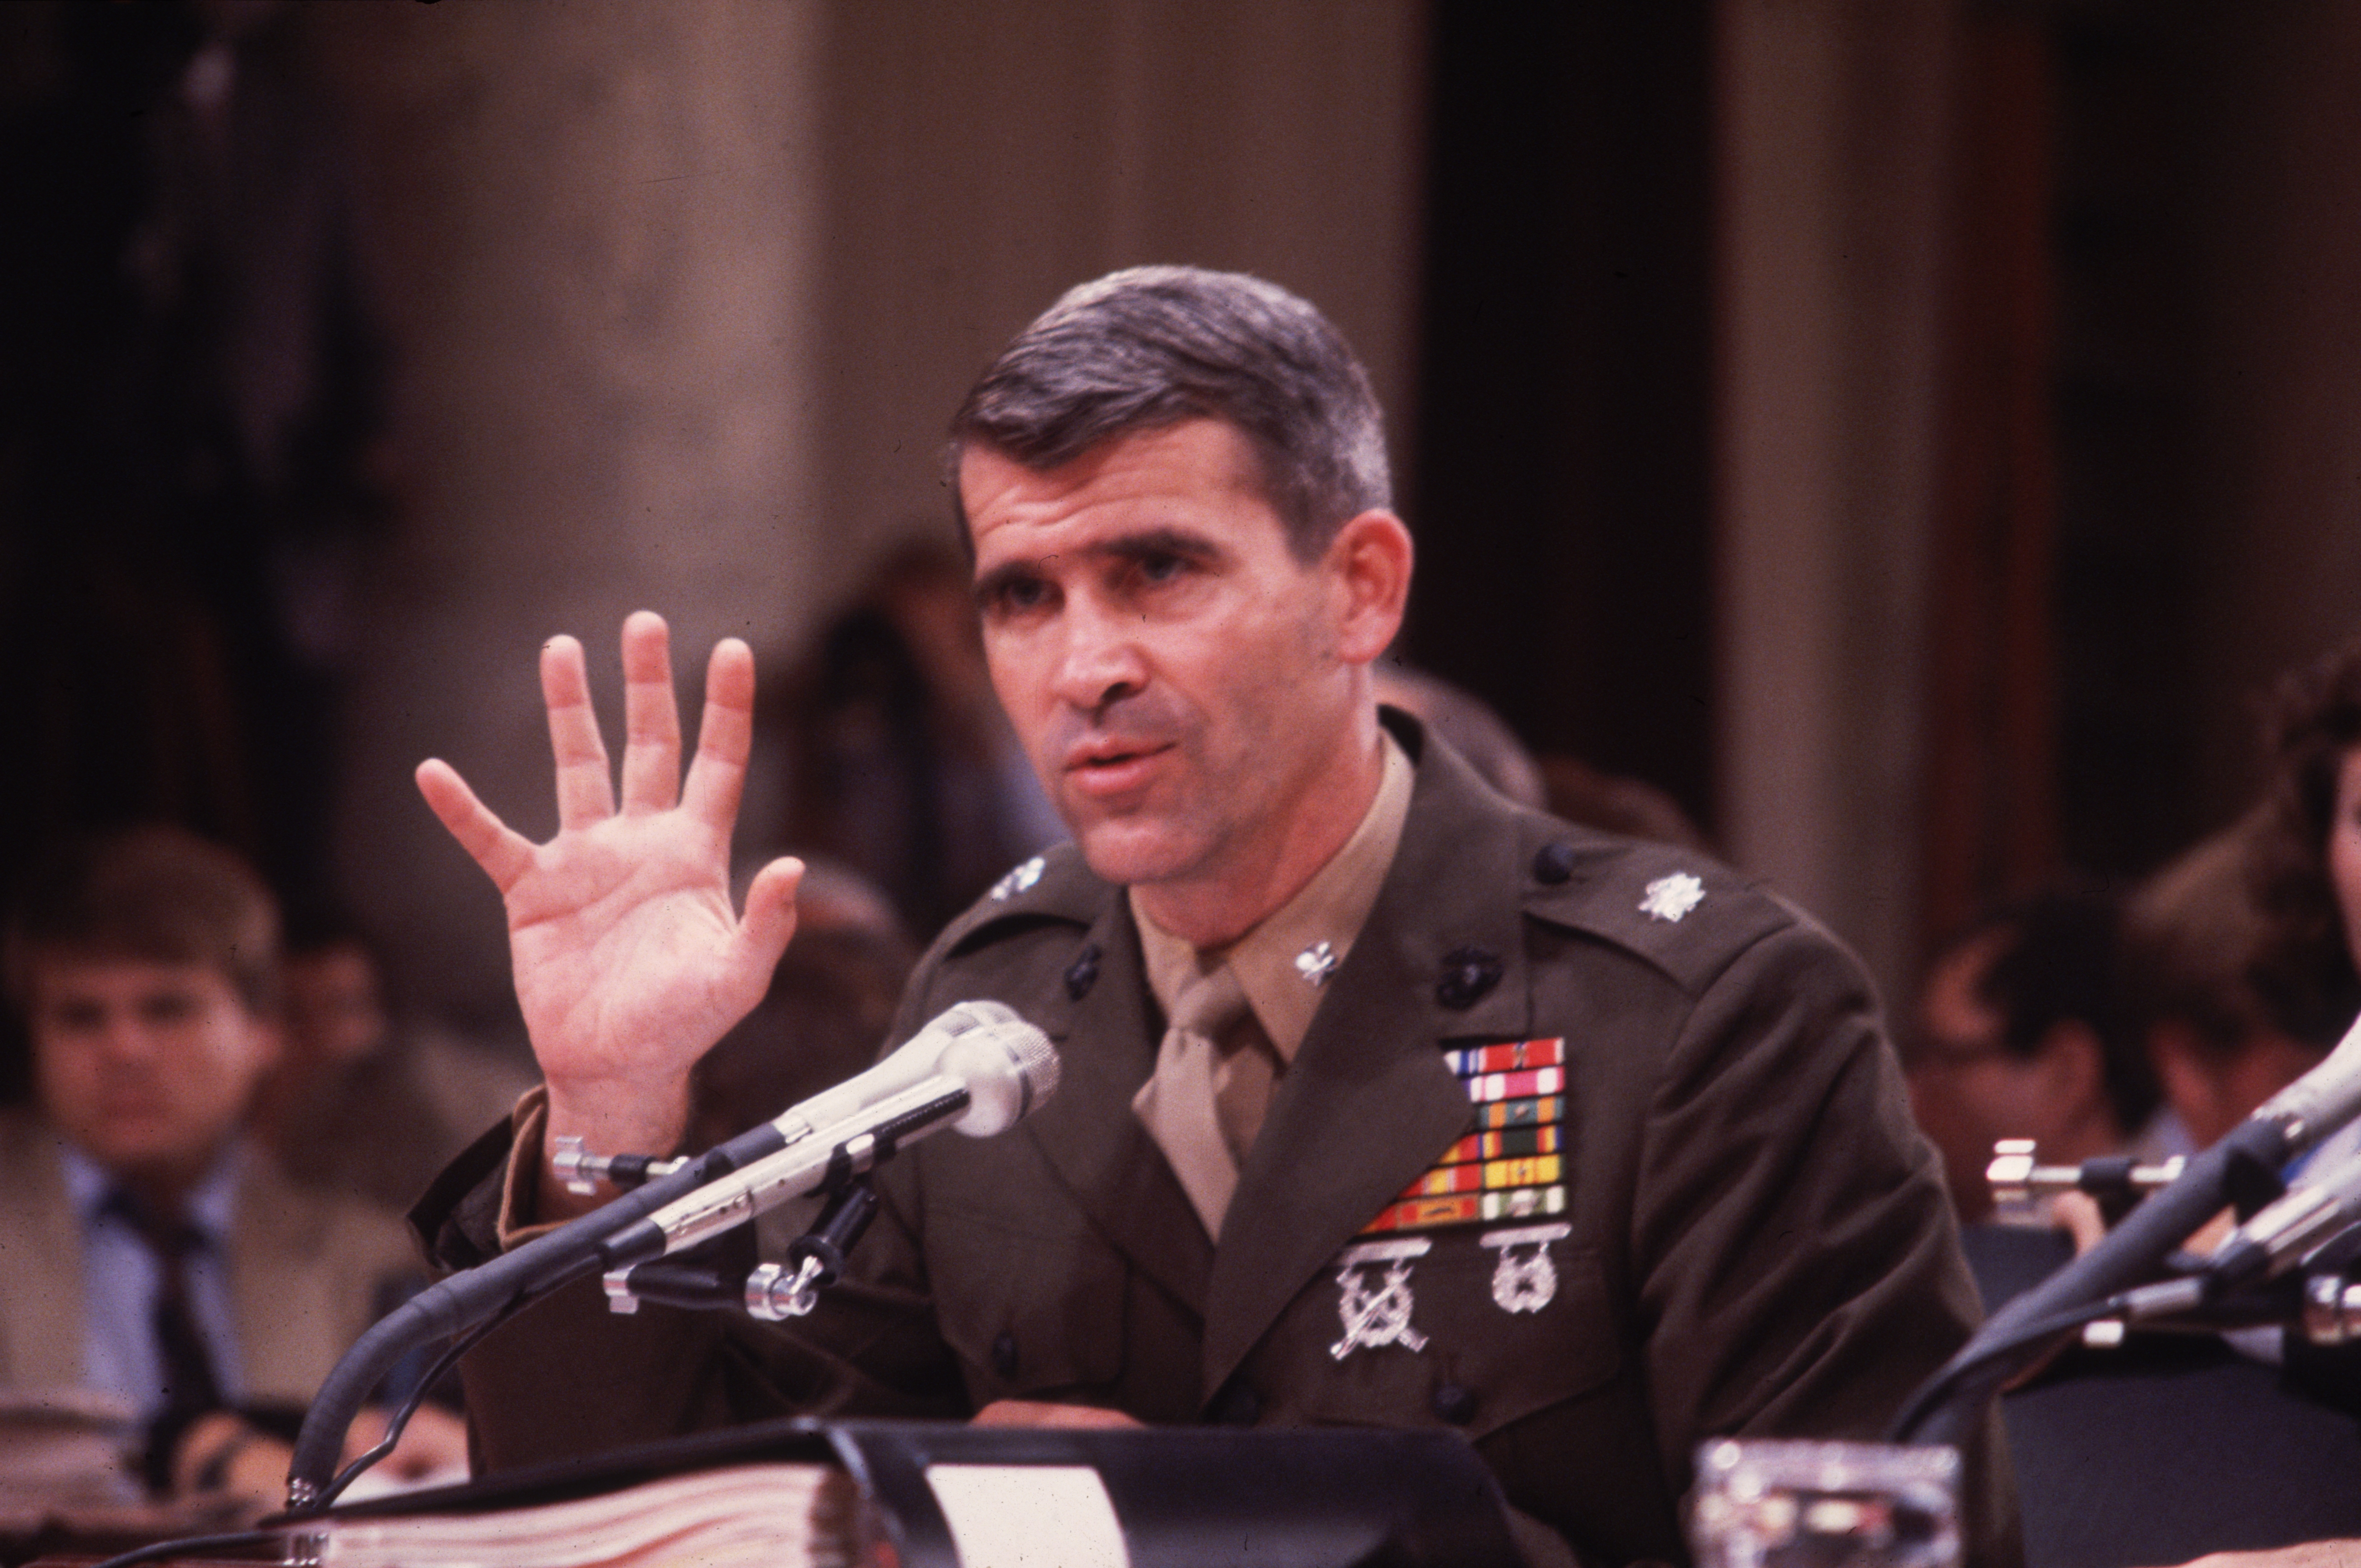 Democrats with dreams of impeachment should consider how Iran-Contra turned out